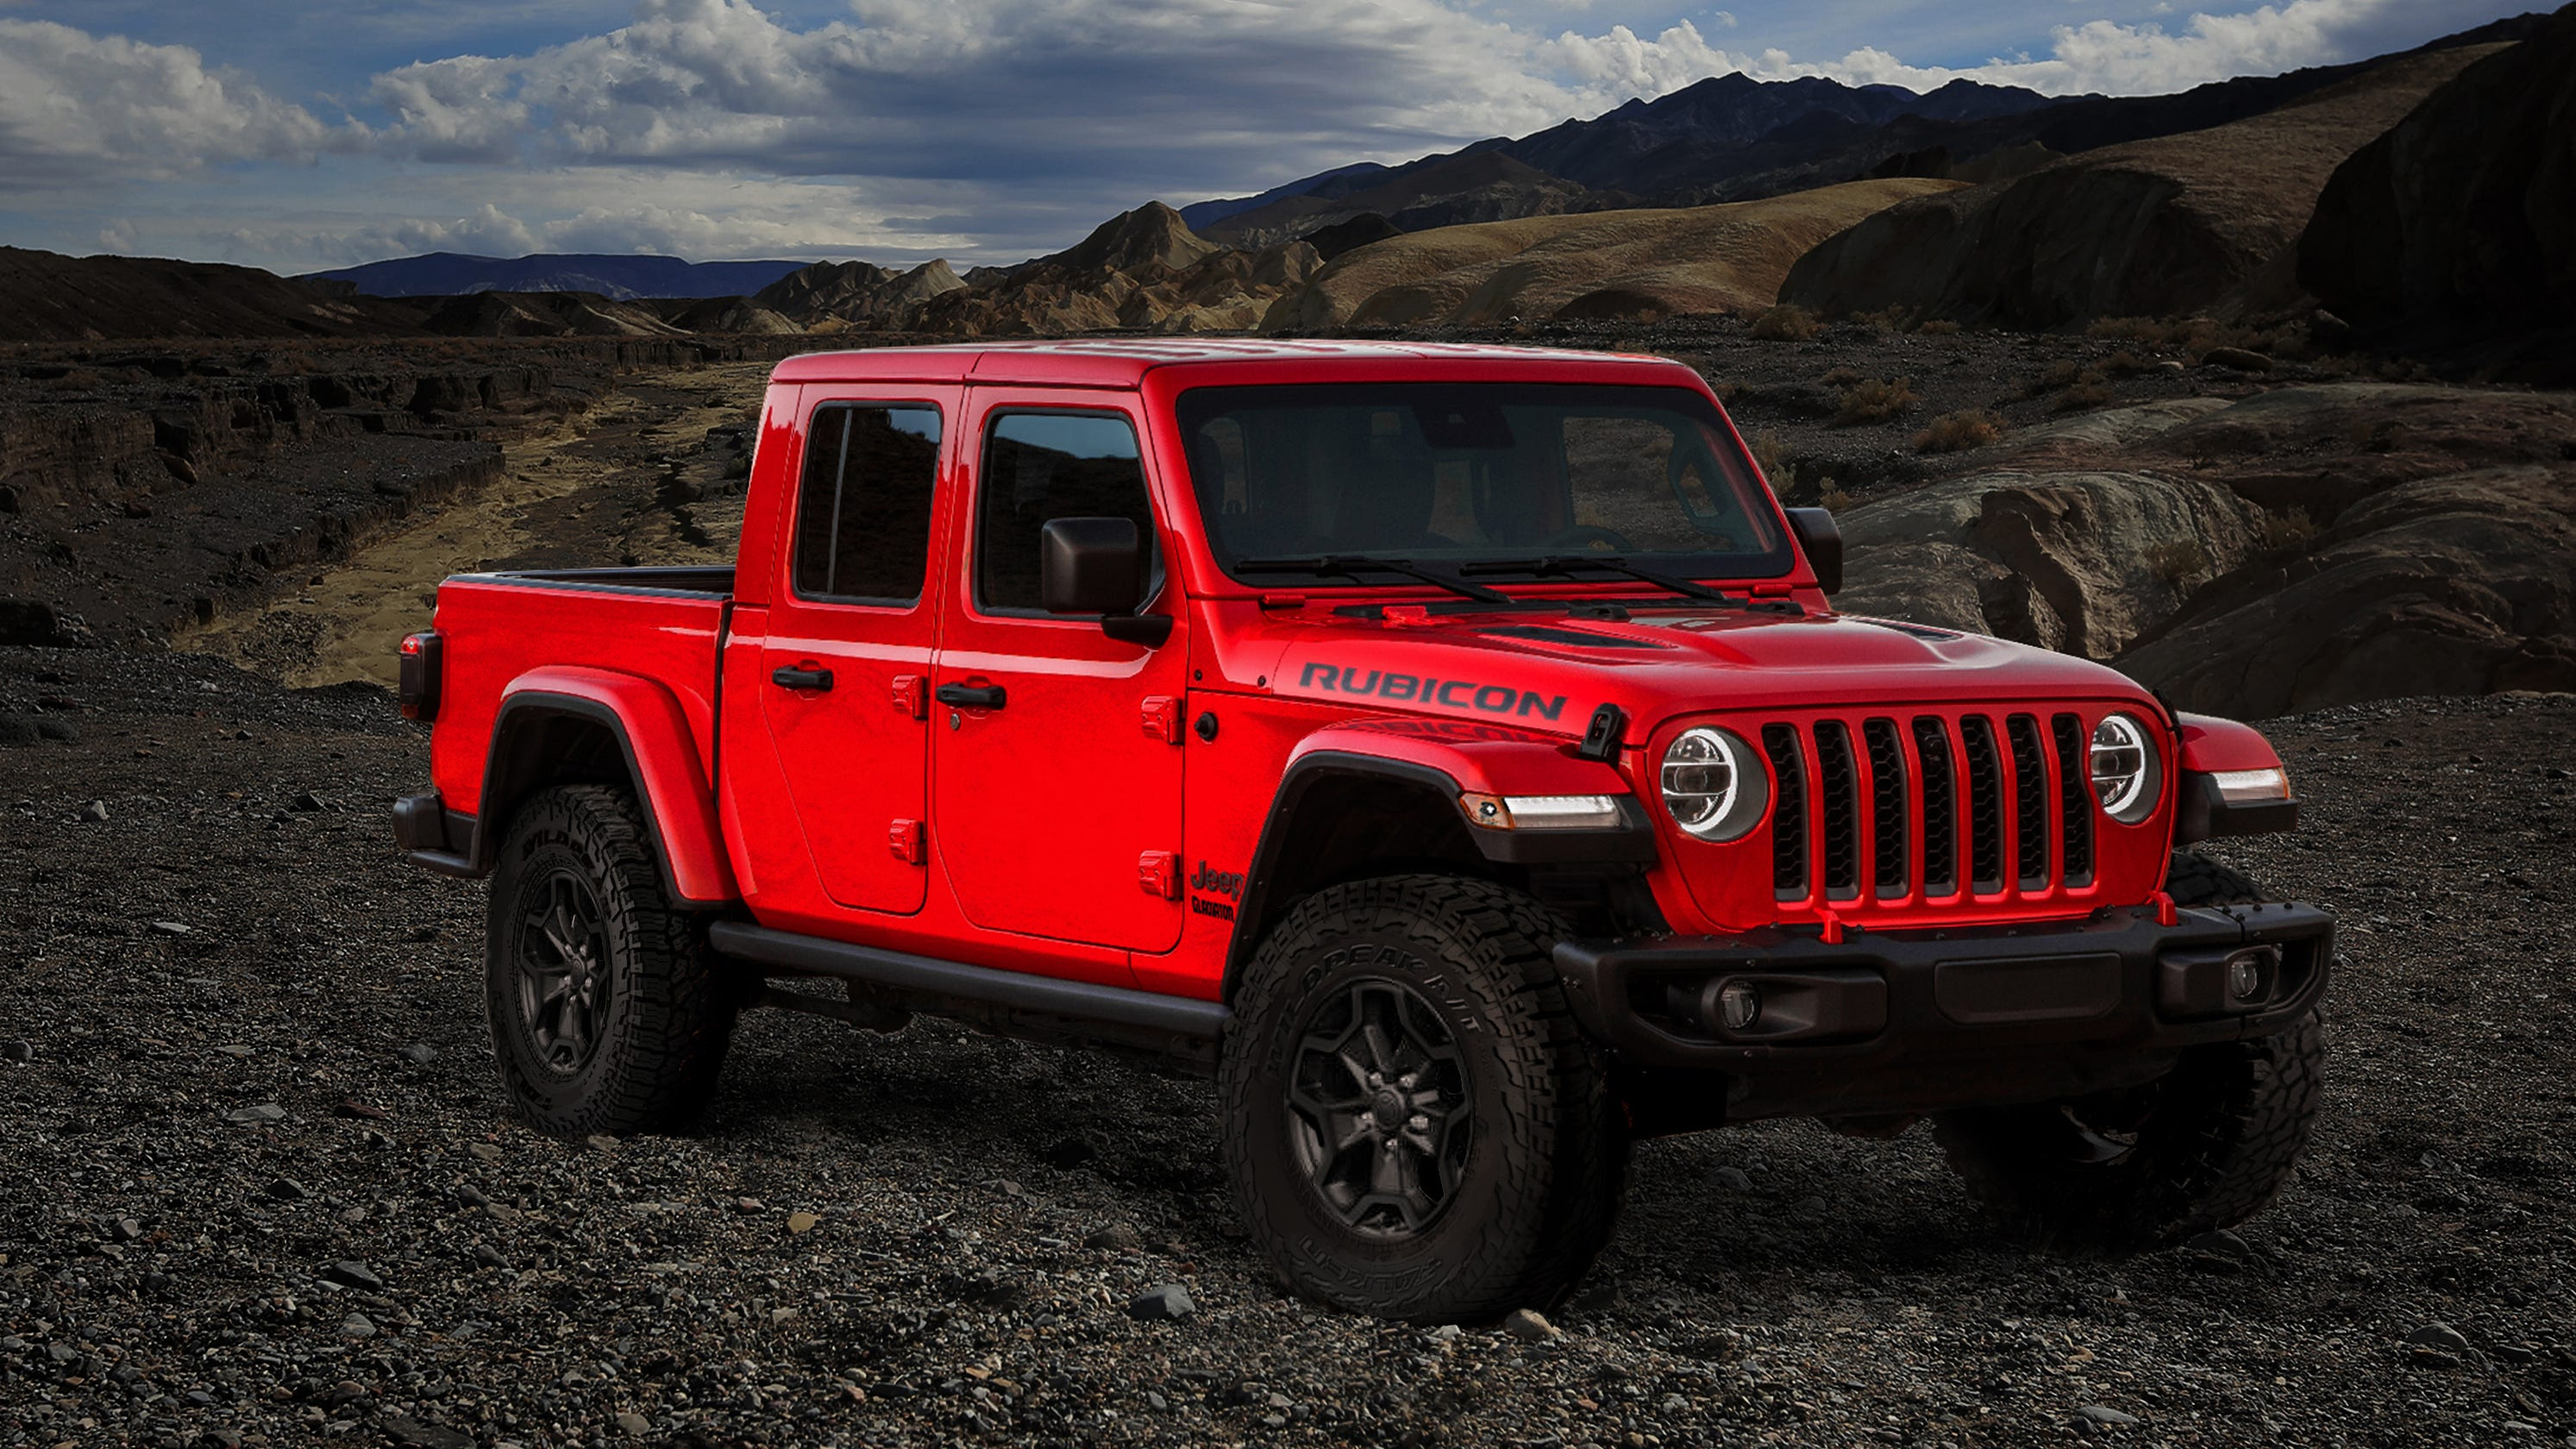 2020 Jeep Gladiator Launch Edition, priced at $60K, sells out